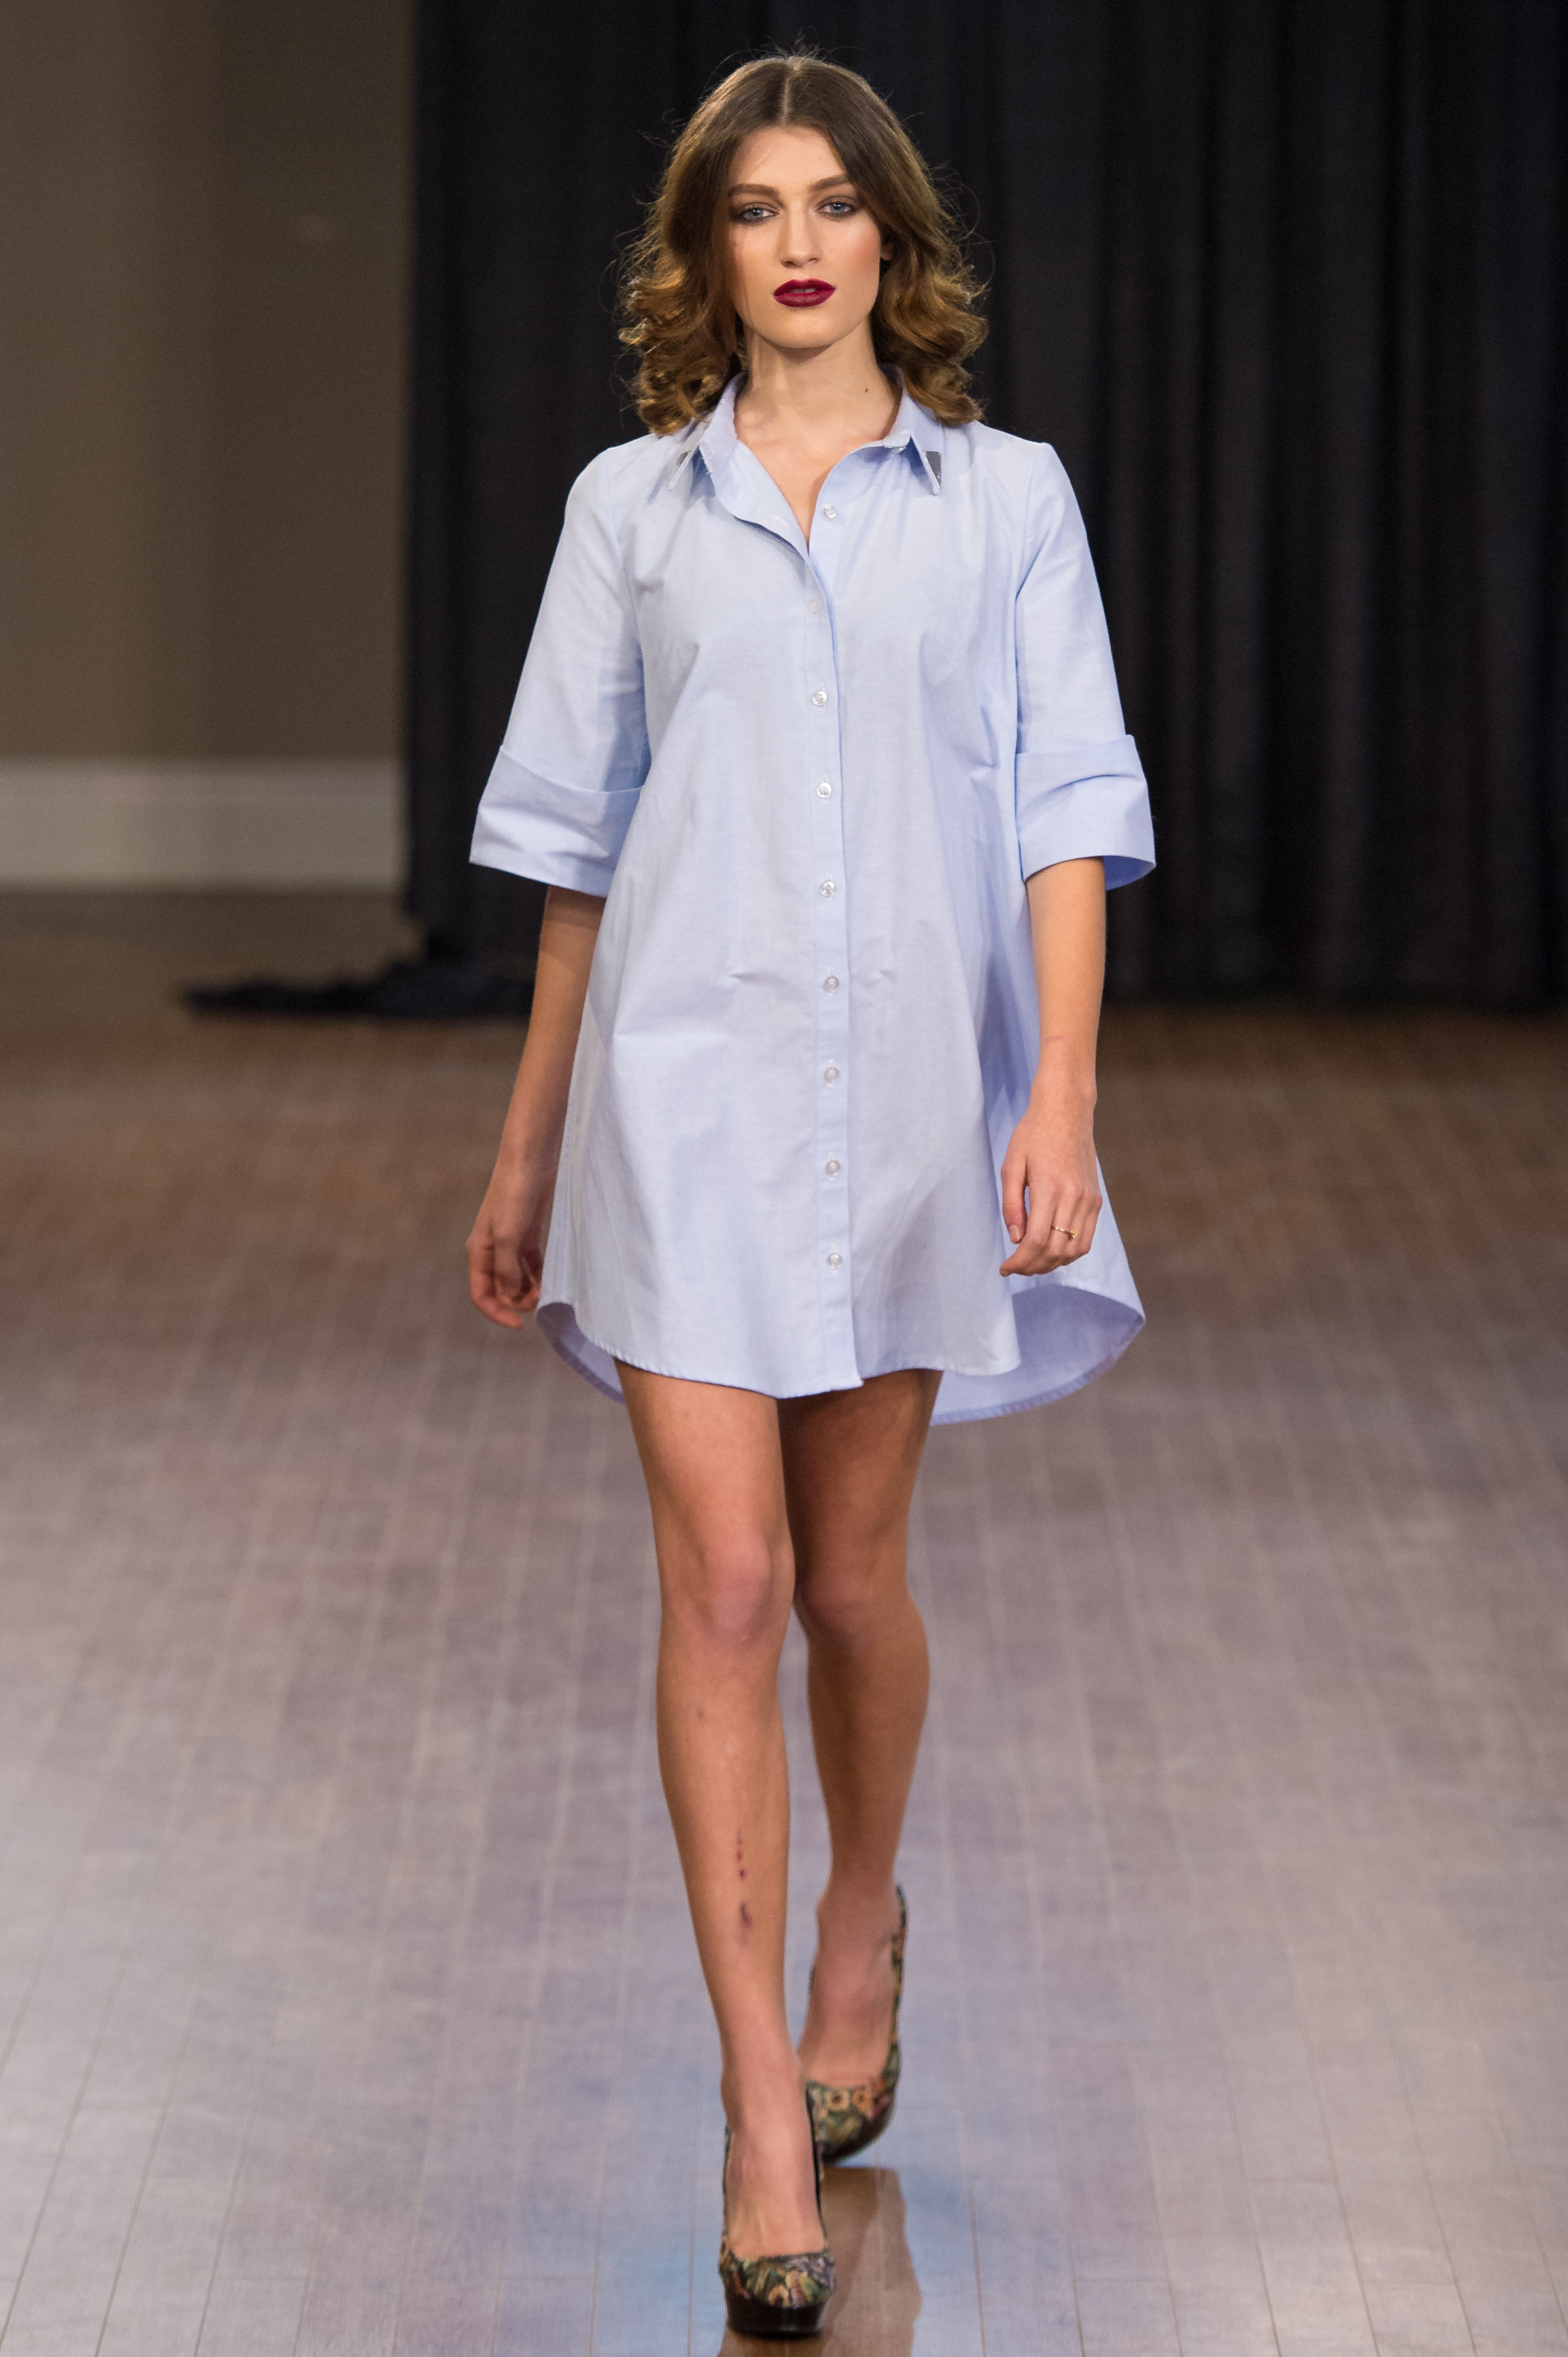 Look 02 -   Button Up Shirt Dress   Available Sizes:      XS/S      M/L     Available Colours:     White ( 97% Cotton / 3% Spandex)     Blue (100% Cotton) SOLD OUT